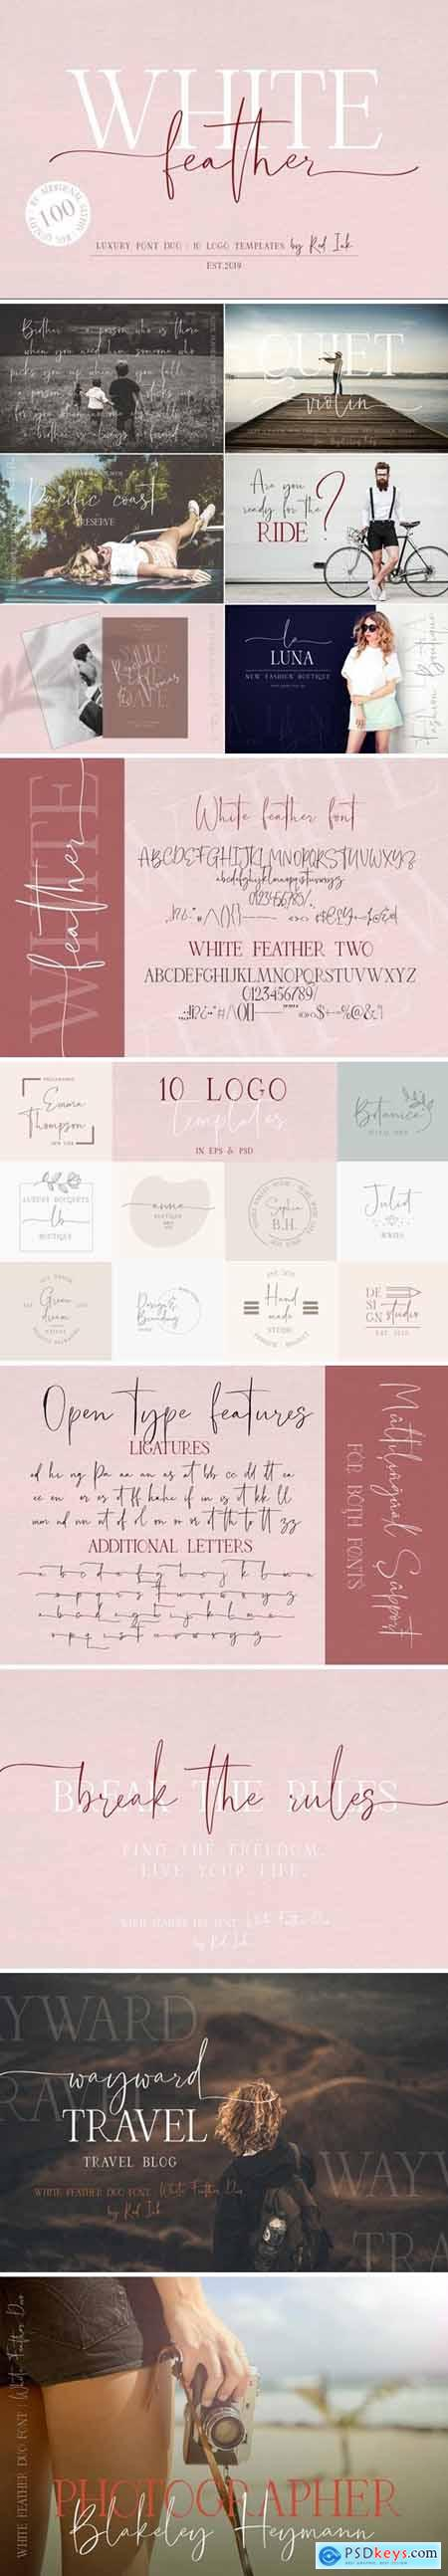 White Feather Luxury Duo Font 3951192